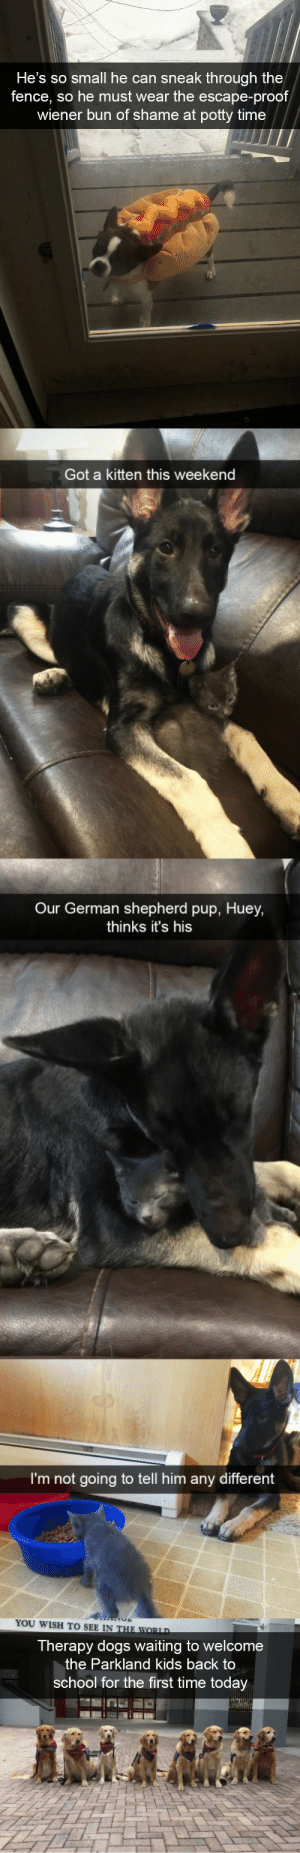 babyanimalgifs:  Dog snapsvia @animalsnaps: He's so small he can sneak through the  fence, so he must wear the escape-proof  wiener bun of shame at potty time   Got a kitten this weekend  Our German shepherd pup, Huey,  thinks it's his  I'm not going to tell him any different   YOU WISH TO SEE IN  Therapy dogs waiting to welcome  the Parkland kids back to  school for the first time today babyanimalgifs:  Dog snapsvia @animalsnaps